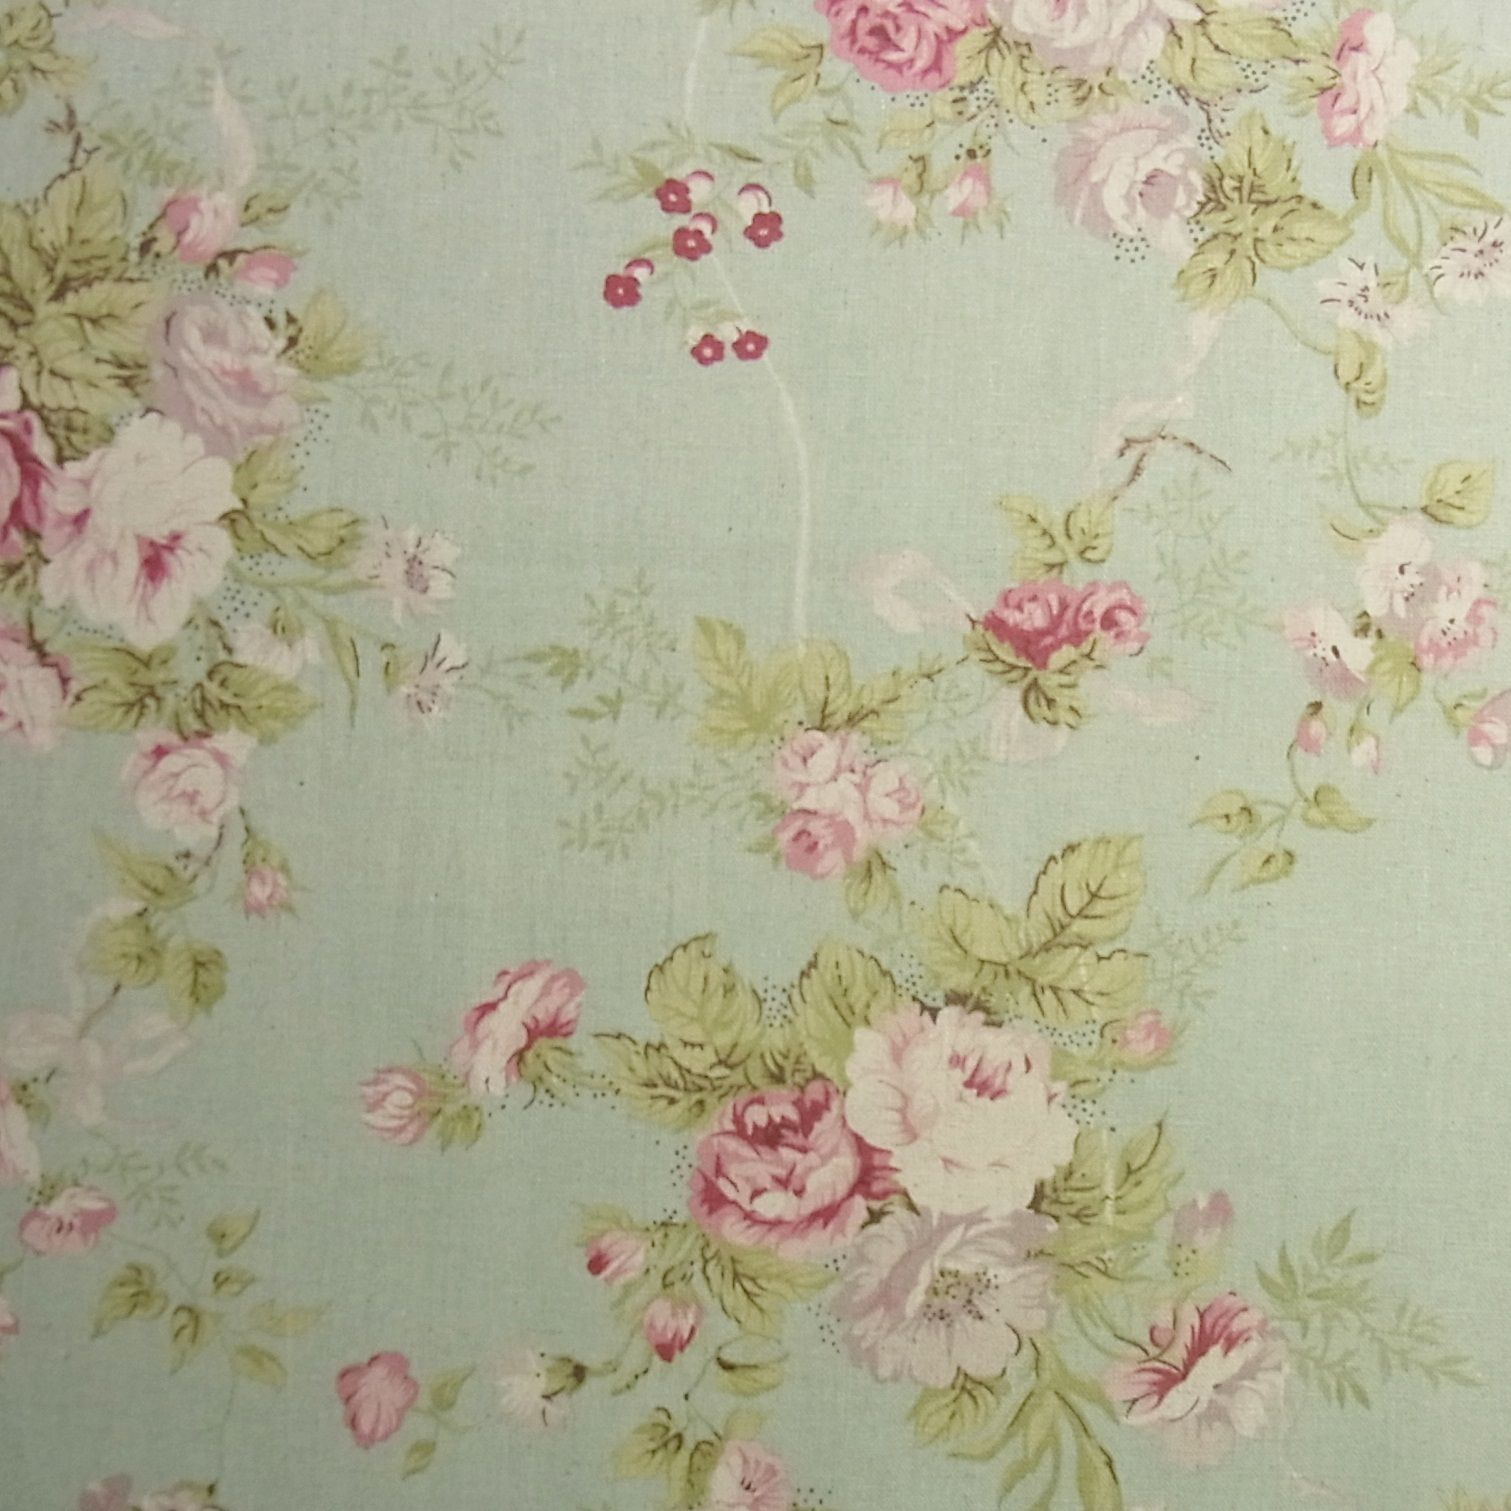 Vintage Style Linen Blend Fabric Rose Flowers Shabby Chic Mint Green